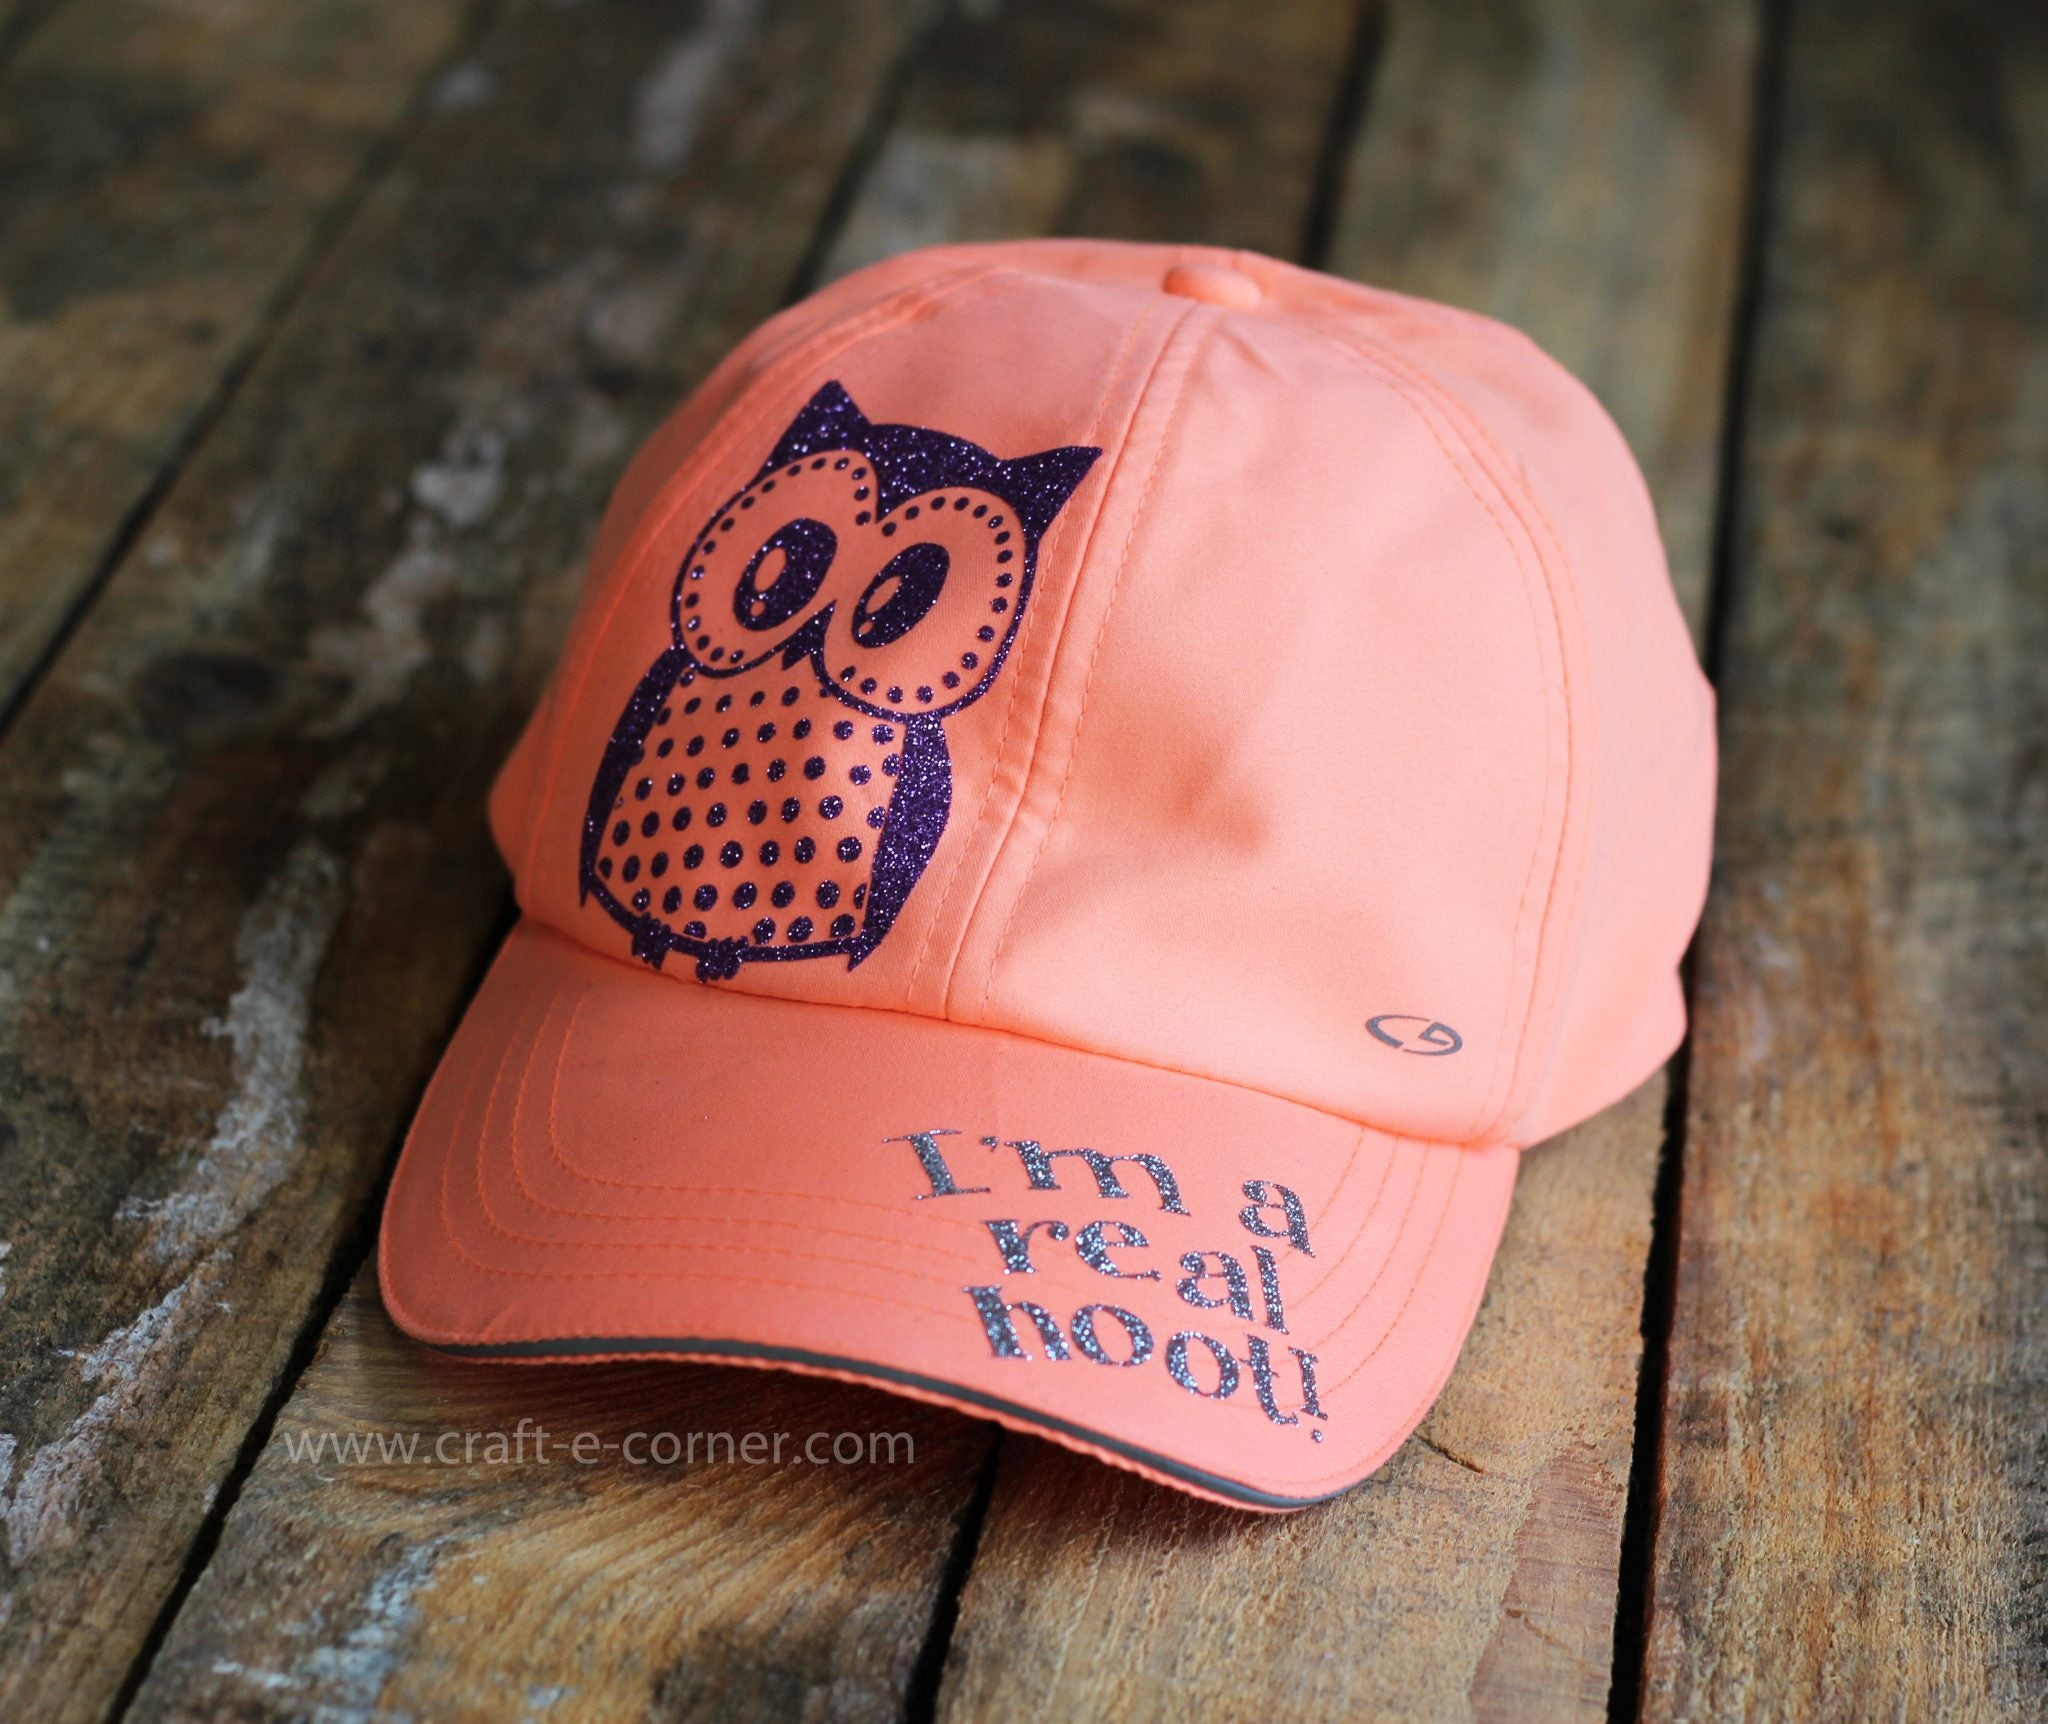 Tips and tricks on how to weed glitter heat transfer vinyl. Adding vinyl to a hat!